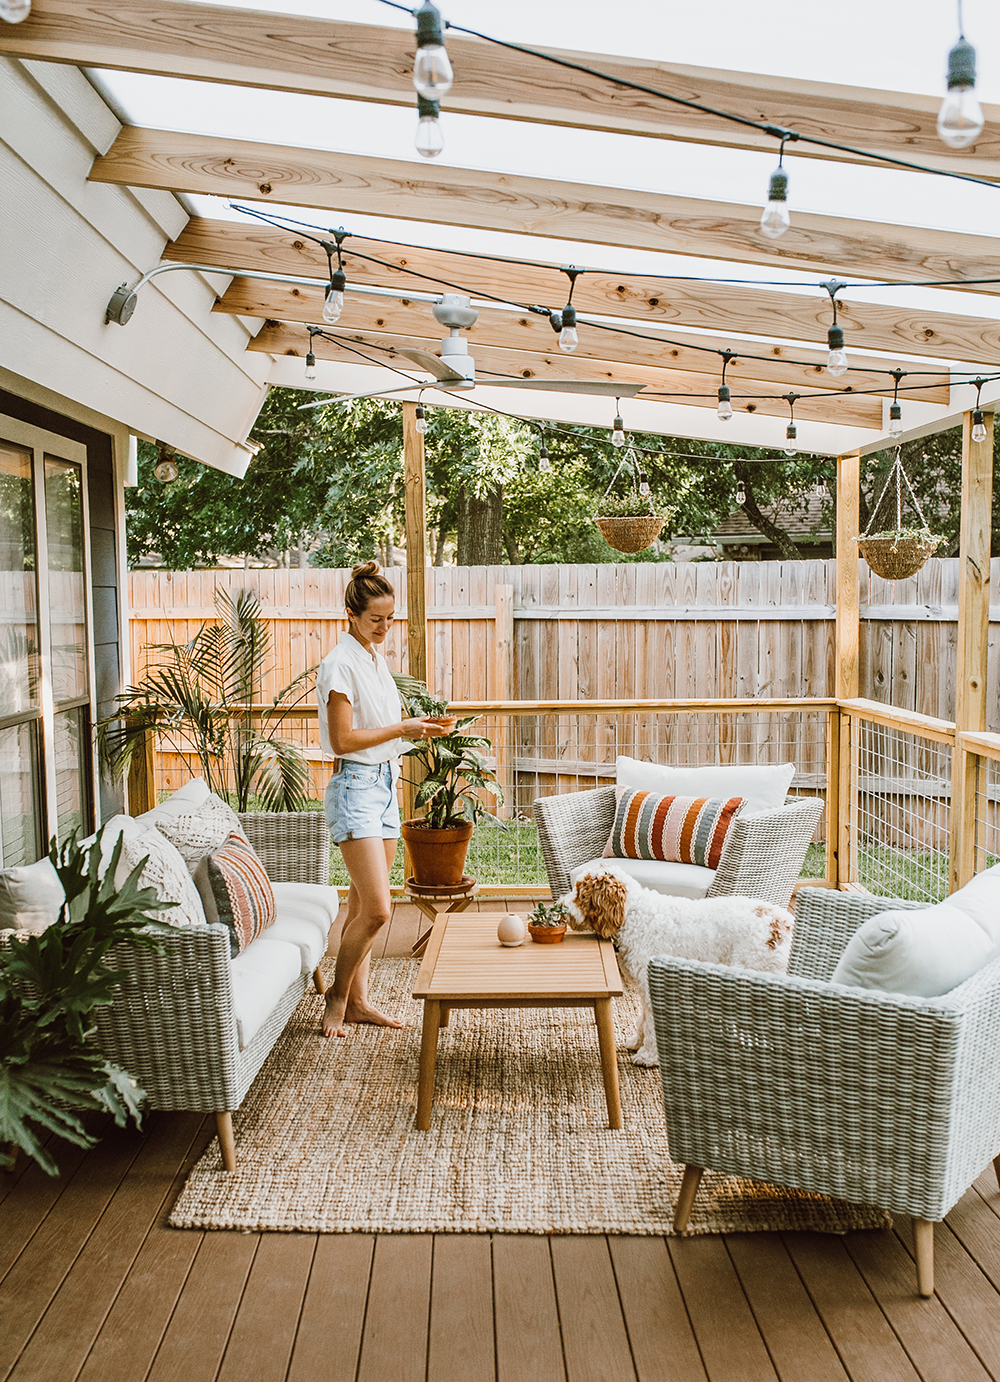 livvyland-blog-olivia-watson-before-after-outside-patio-renovation-reveal-furniture-austin-texas-lifestyle-blogger-8